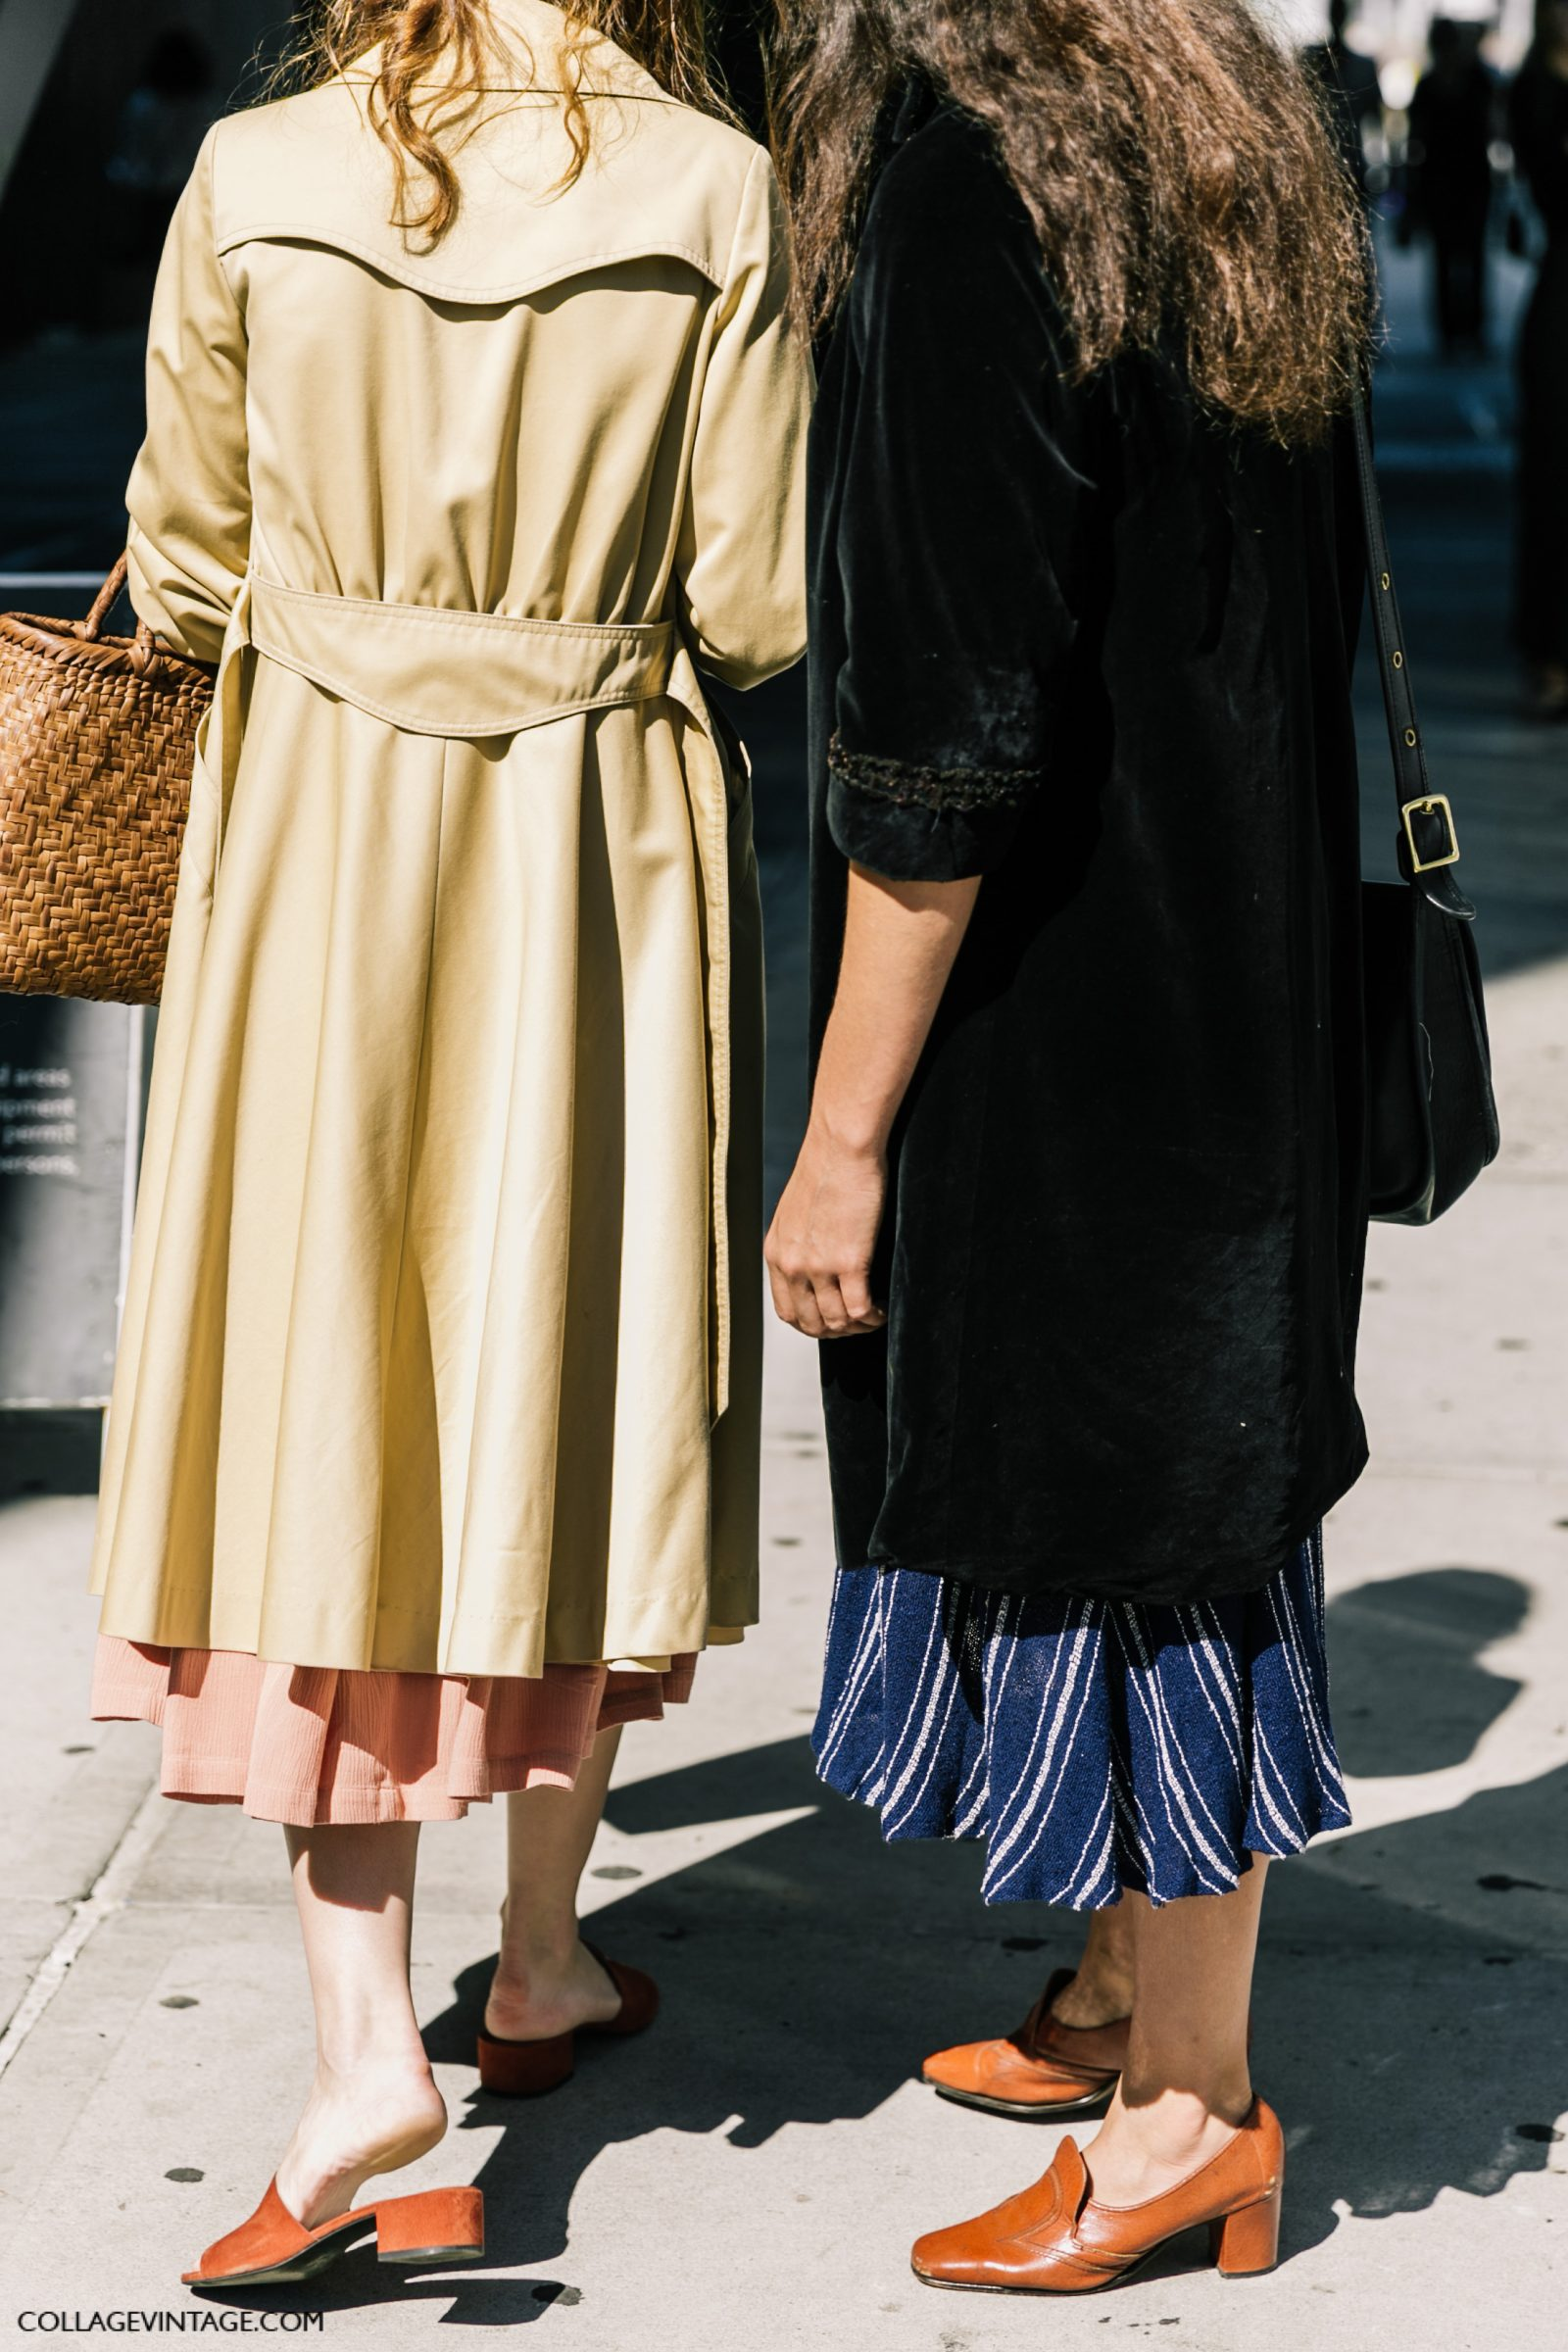 nyfw-new_york_fashion_week_ss17-street_style-outfits-collage_vintage-vintage-phillip_lim-the-row-proenza_schouler-rossie_aussolin-70